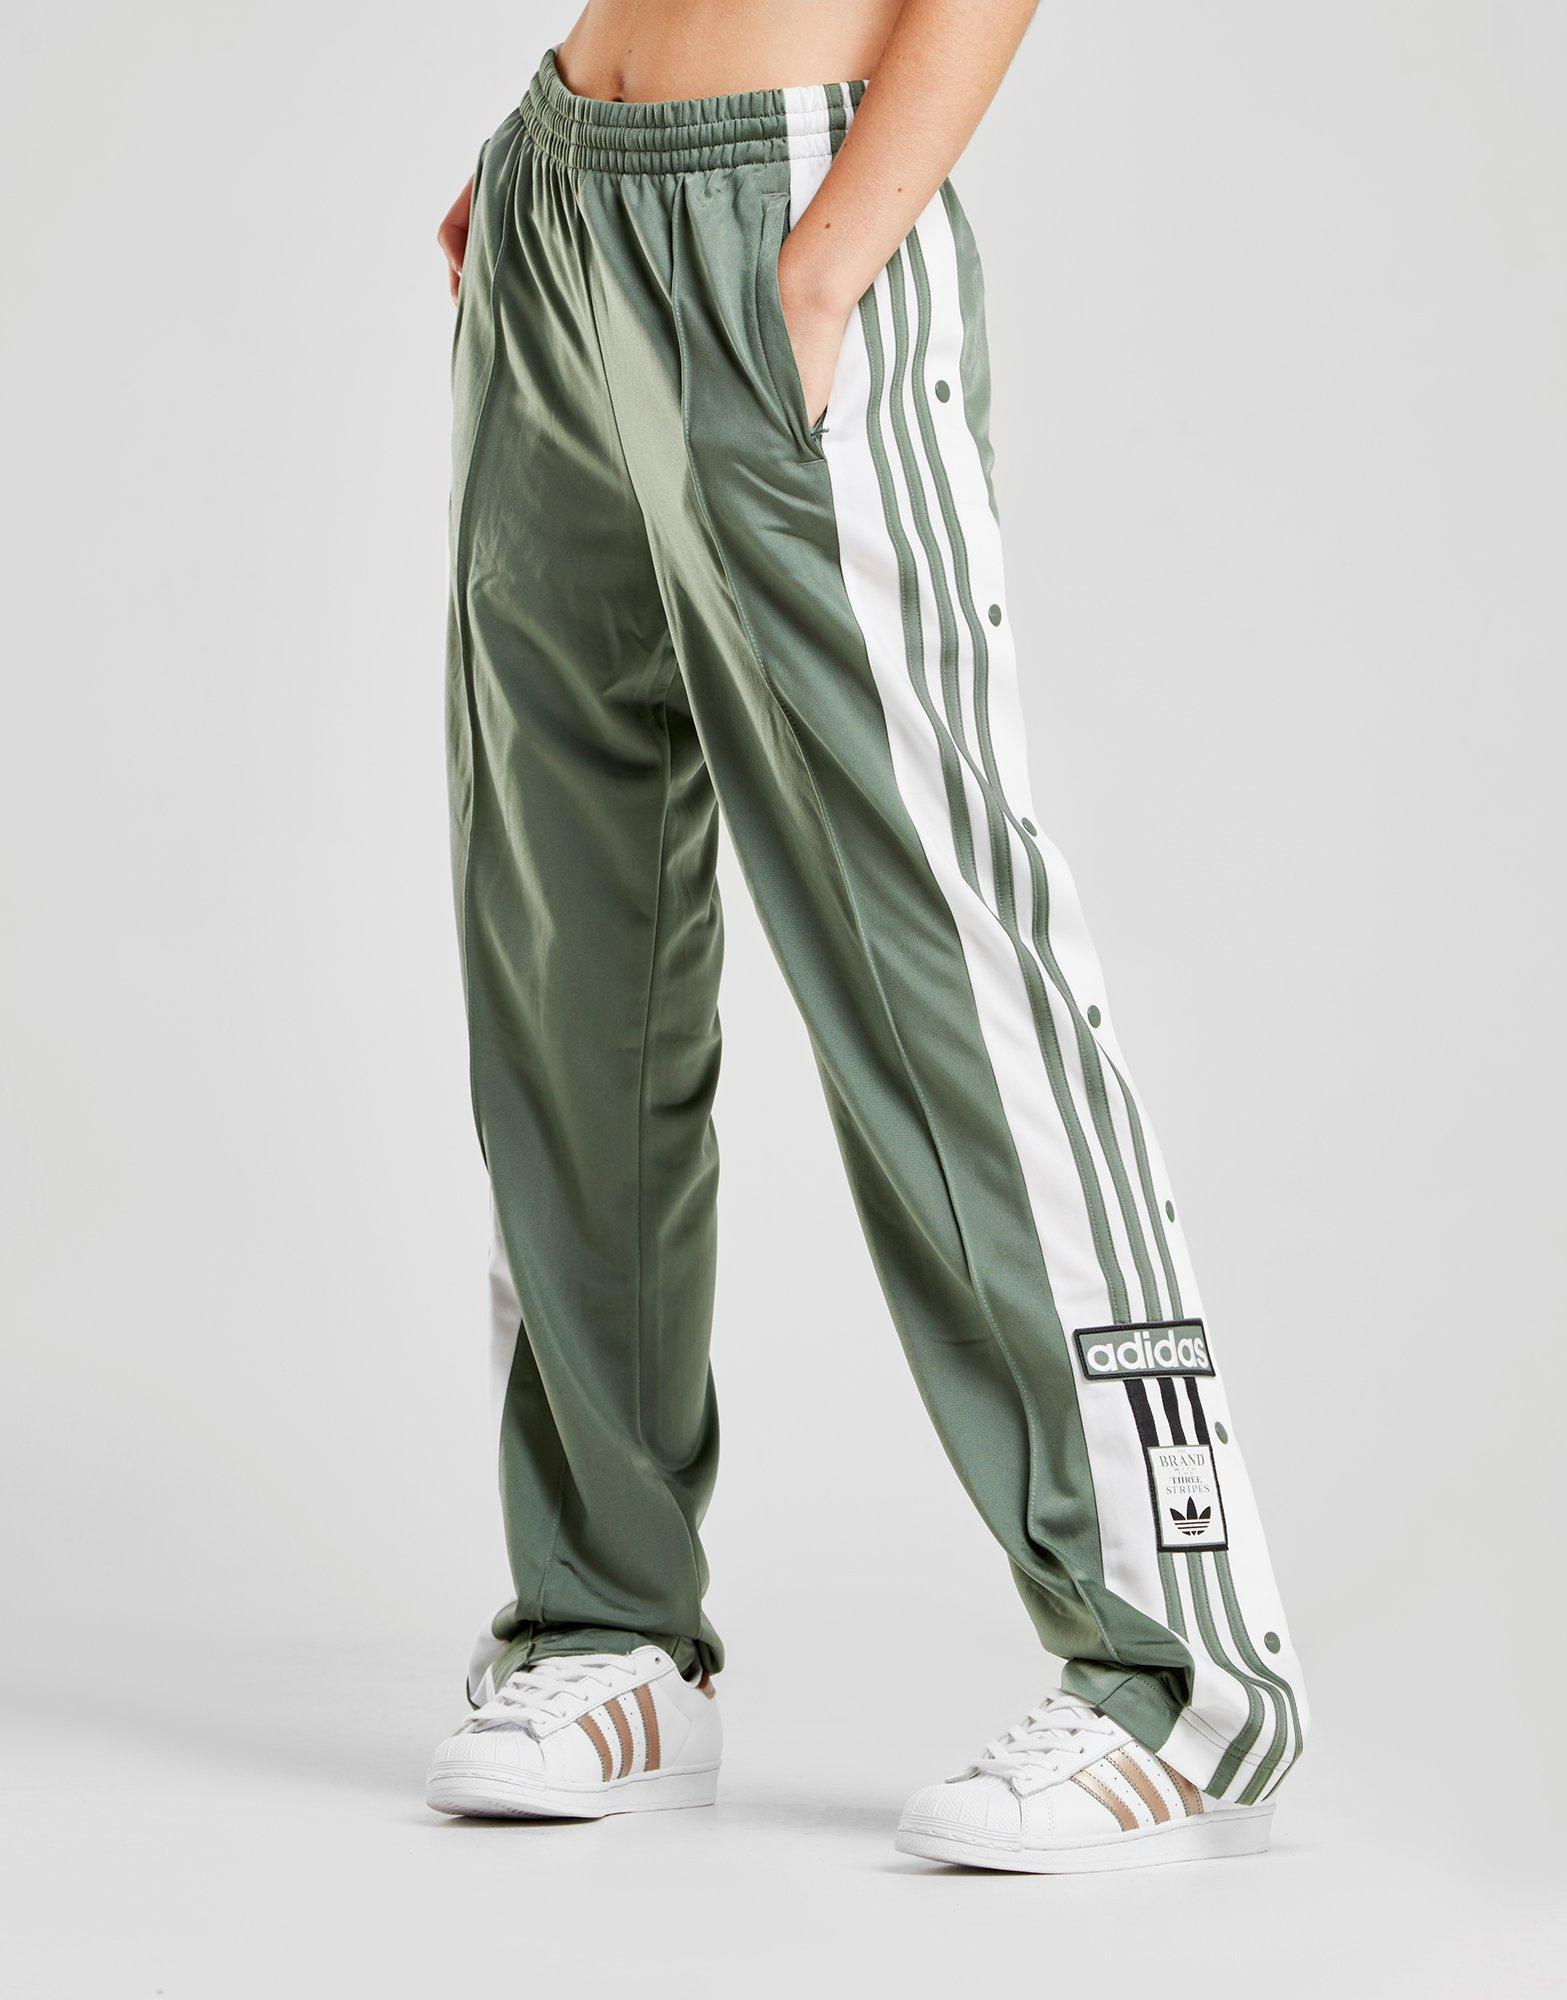 adidas Synthetic Adibreak Track Pants in GreenWhite (Green